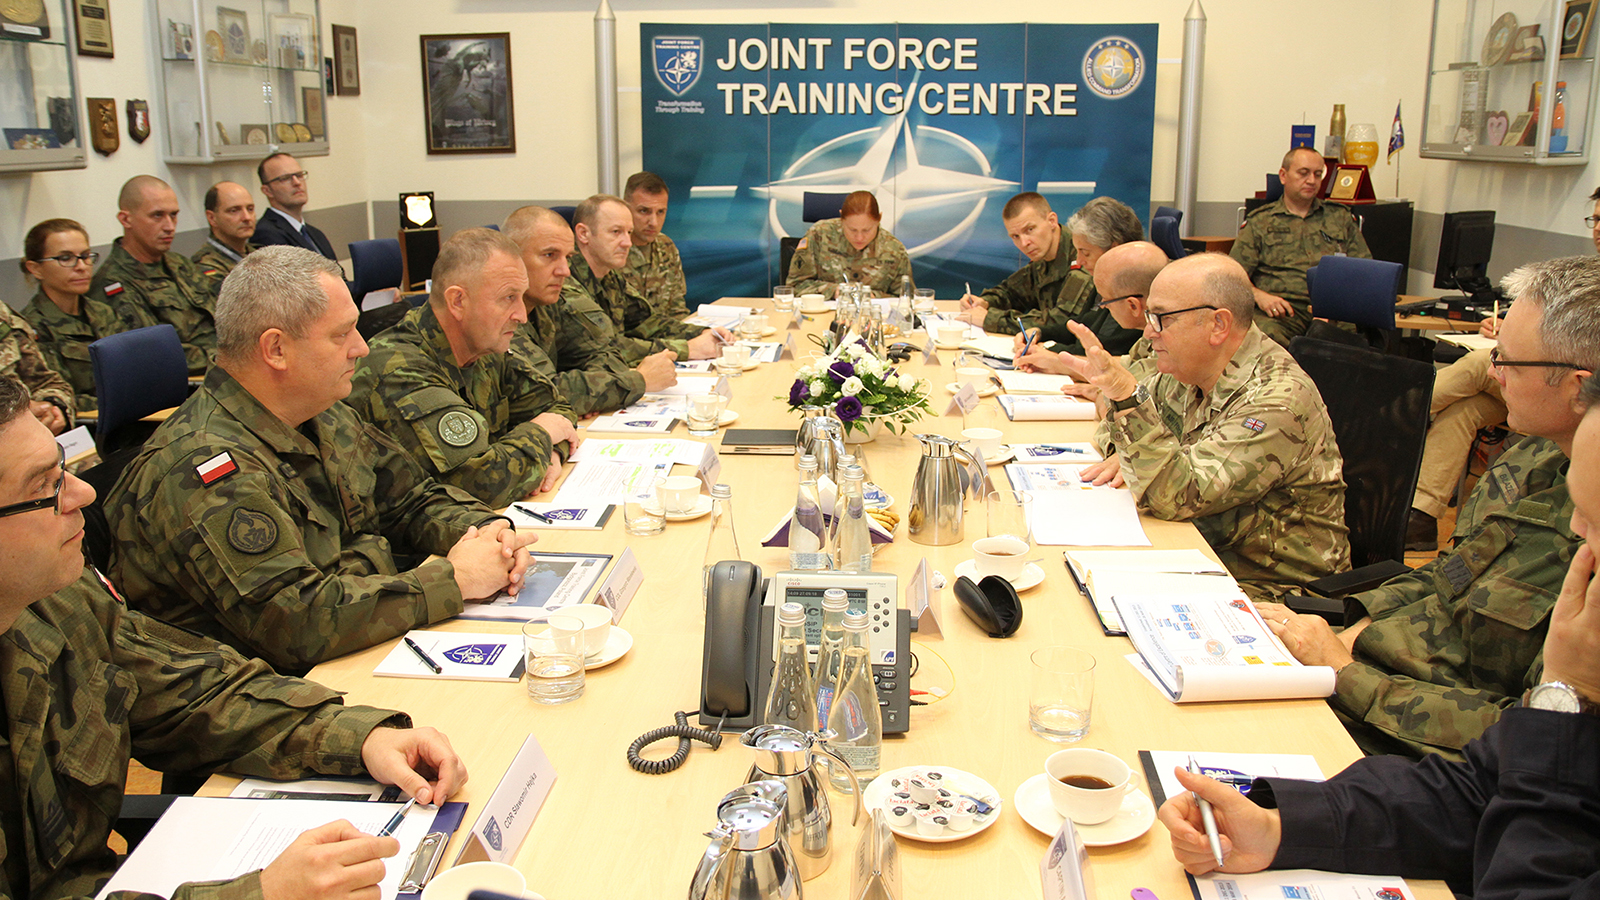 New Chairman of the Military Committee visits JFTC